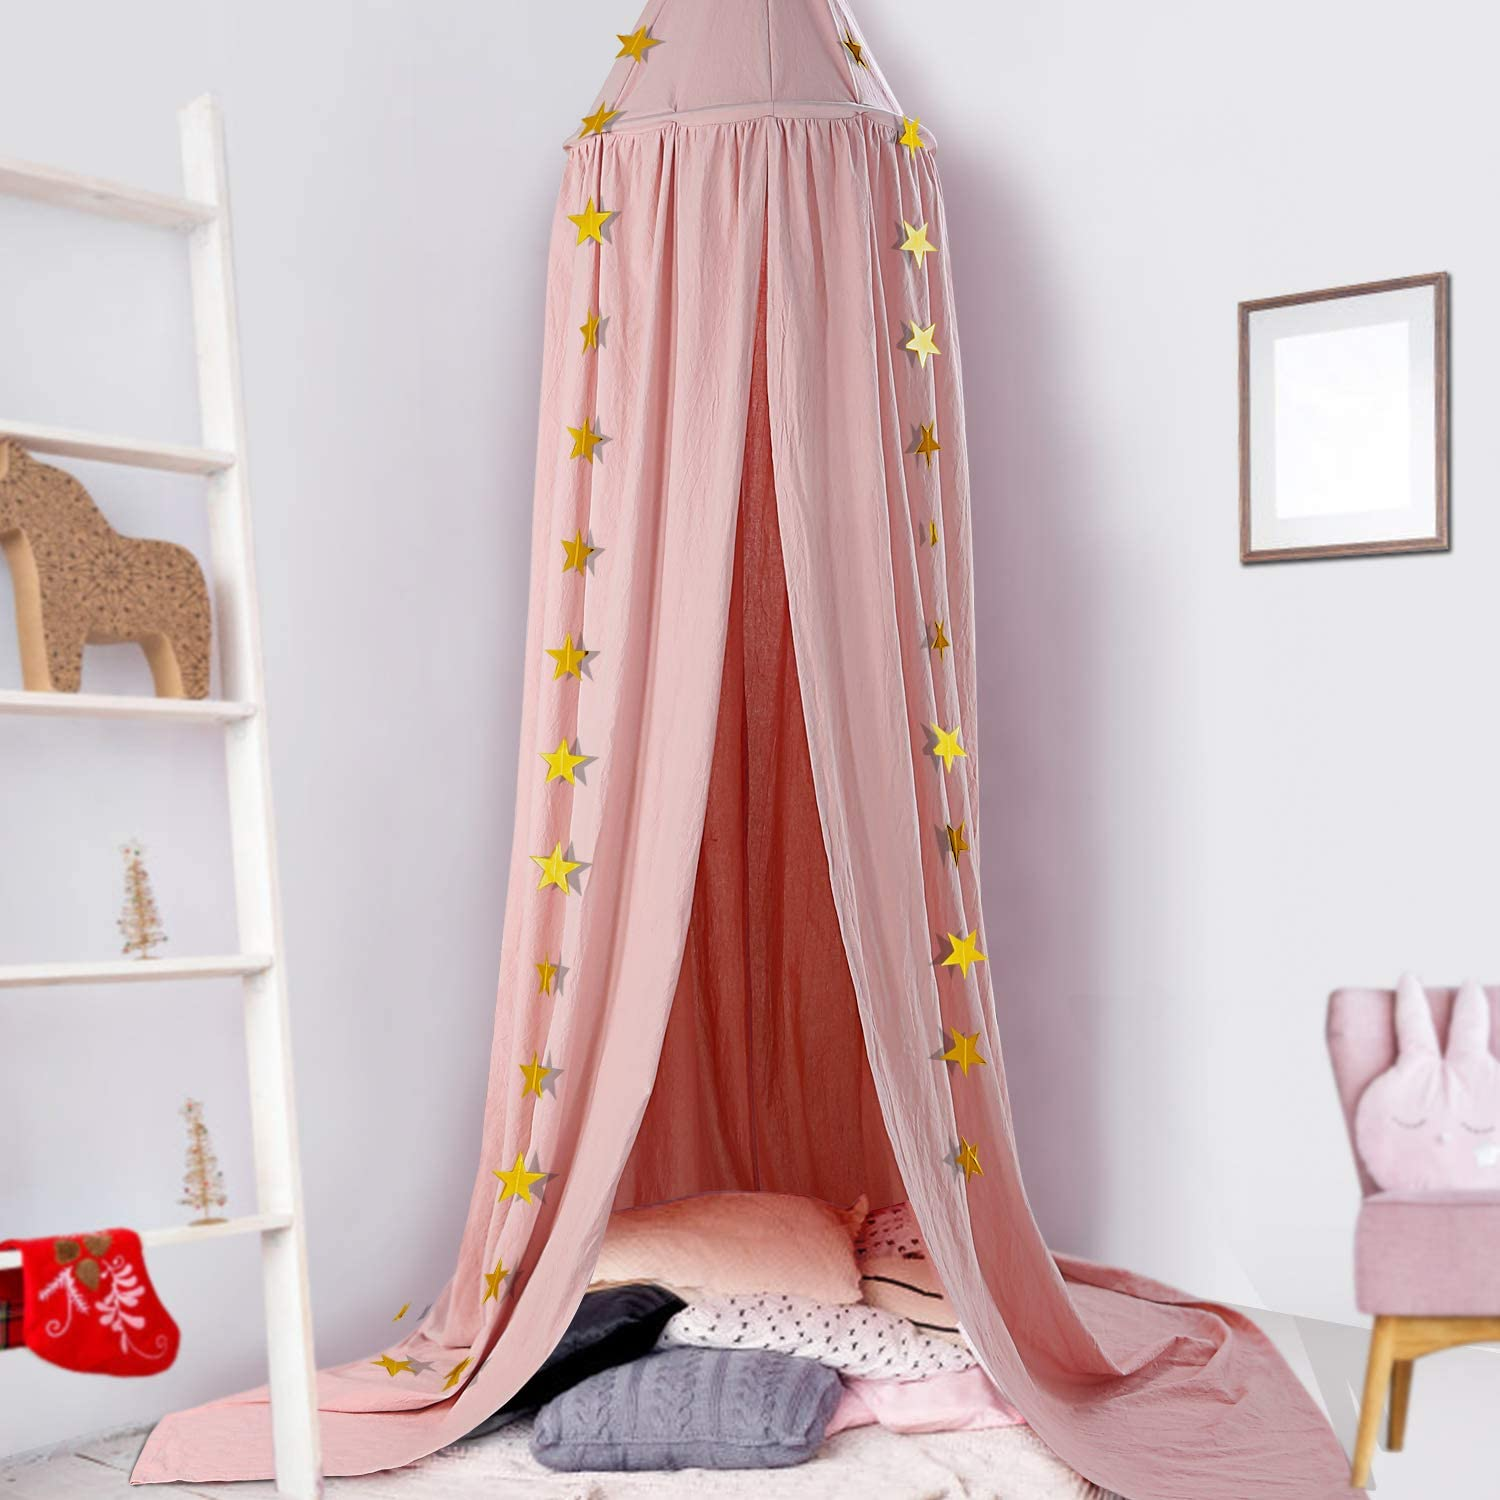 CeeKii Bed Canopy,Kids Nursery Room Decorations,Round Dome Cotton Mosquito Net,Play Tent Crib Nook for Babies Childrens Bedroom DIY with Free Stars,Hight 94.5 inches Blue